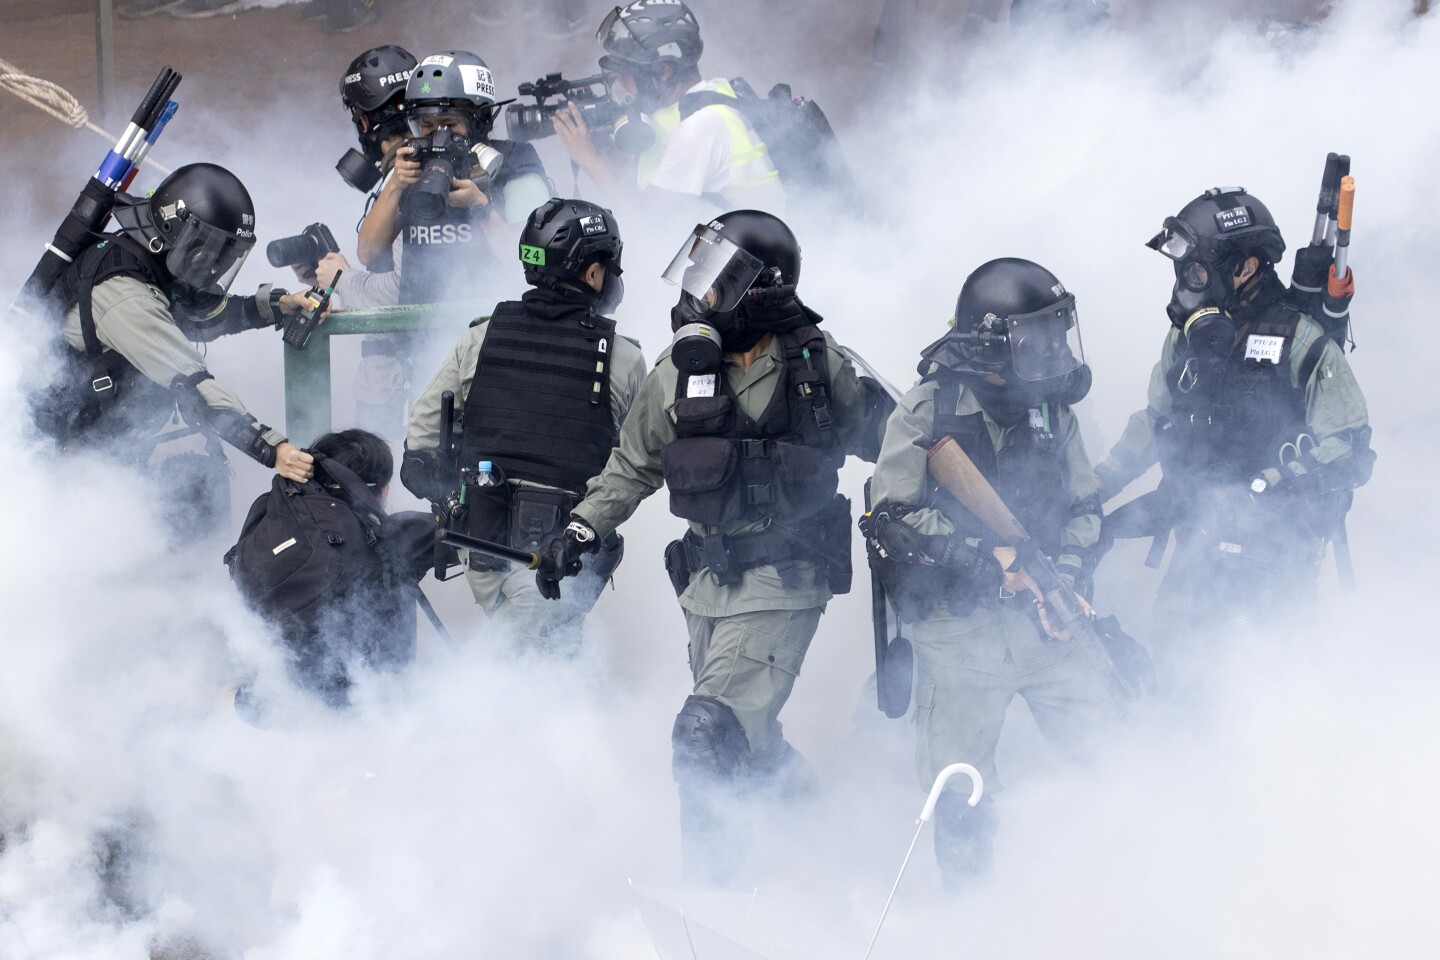 Police in riot gear move through a cloud of smoke as they detain a protestor at the Hong Kong Polytechnic University in Hong Kong, Monday, Nov. 18, 2019. Hong Kong police fought off protesters with tear gas and batons Monday as they tried to break through a police cordon that is trapping hundreds of them on a university campus. (AP Photo/Ng Han Guan)